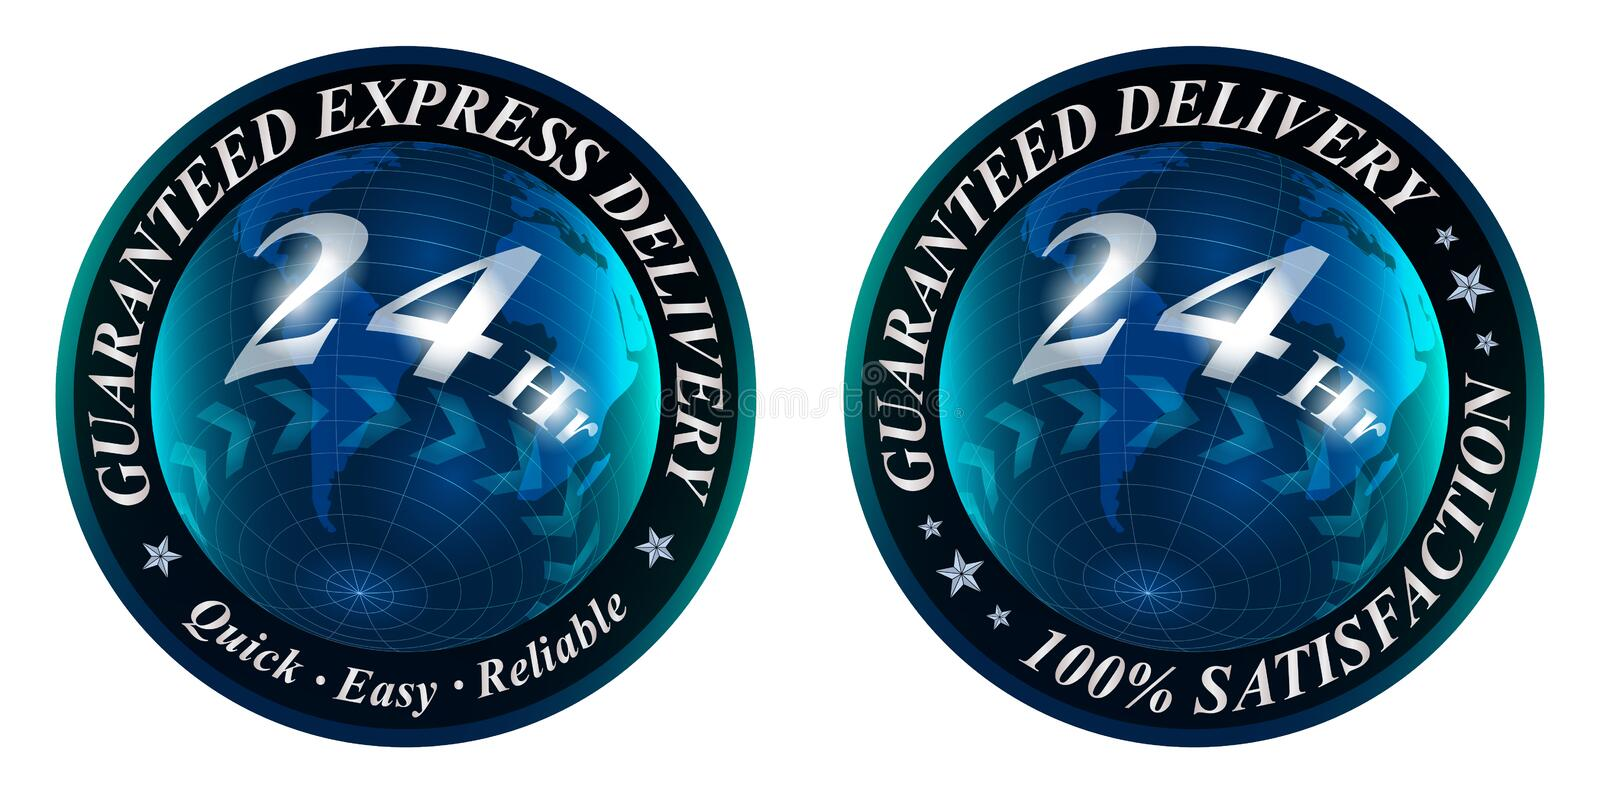 Guaranteed Delivery 24 Hours Satisfaction Logo royalty free stock photos